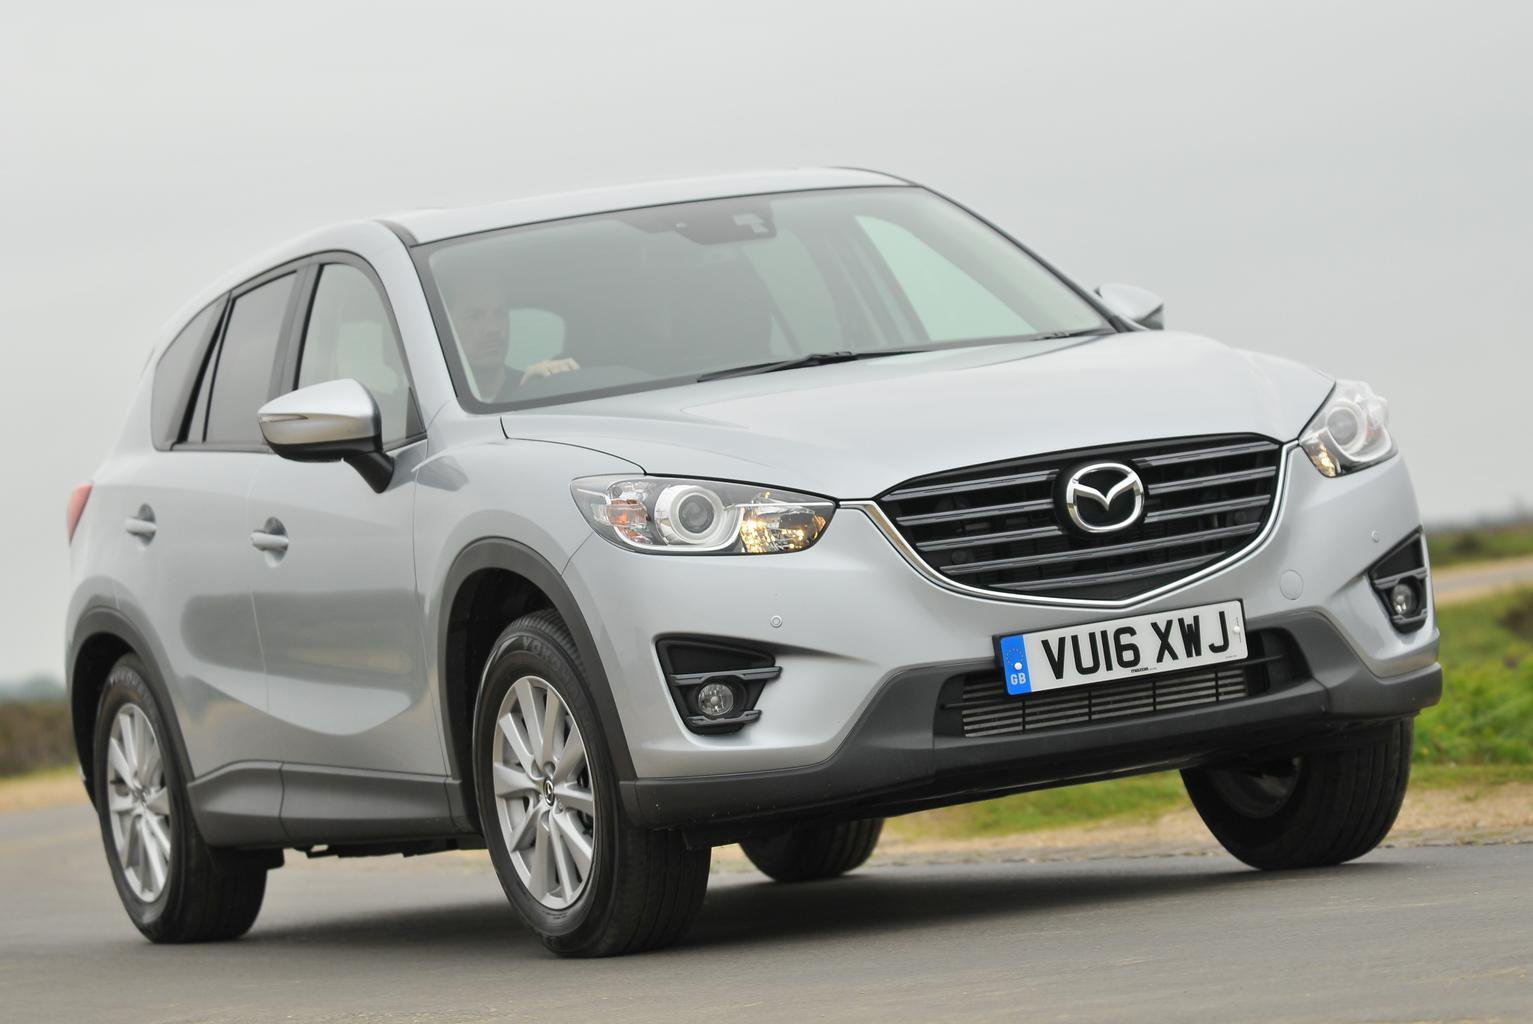 5-star cars for less than £30,000